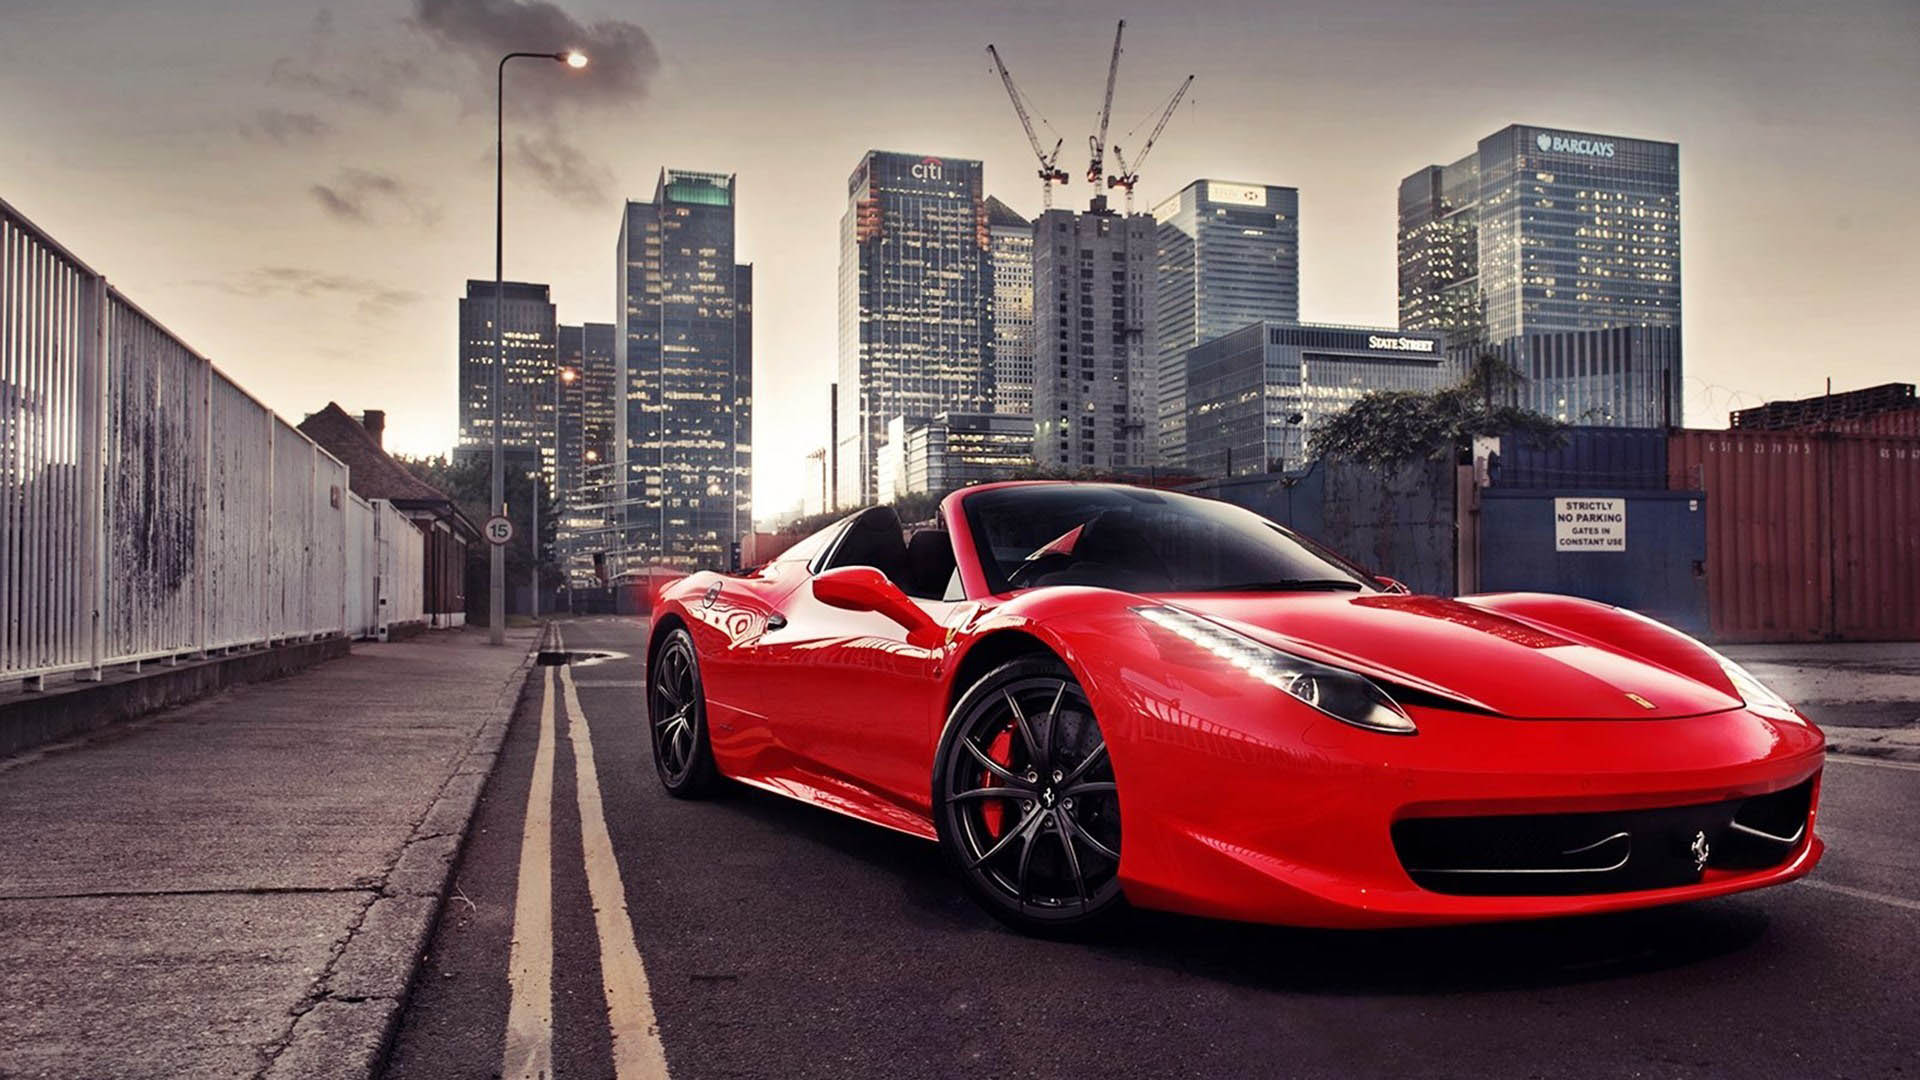 1920x1080 - Ferrari 458 Italia Wallpapers 22